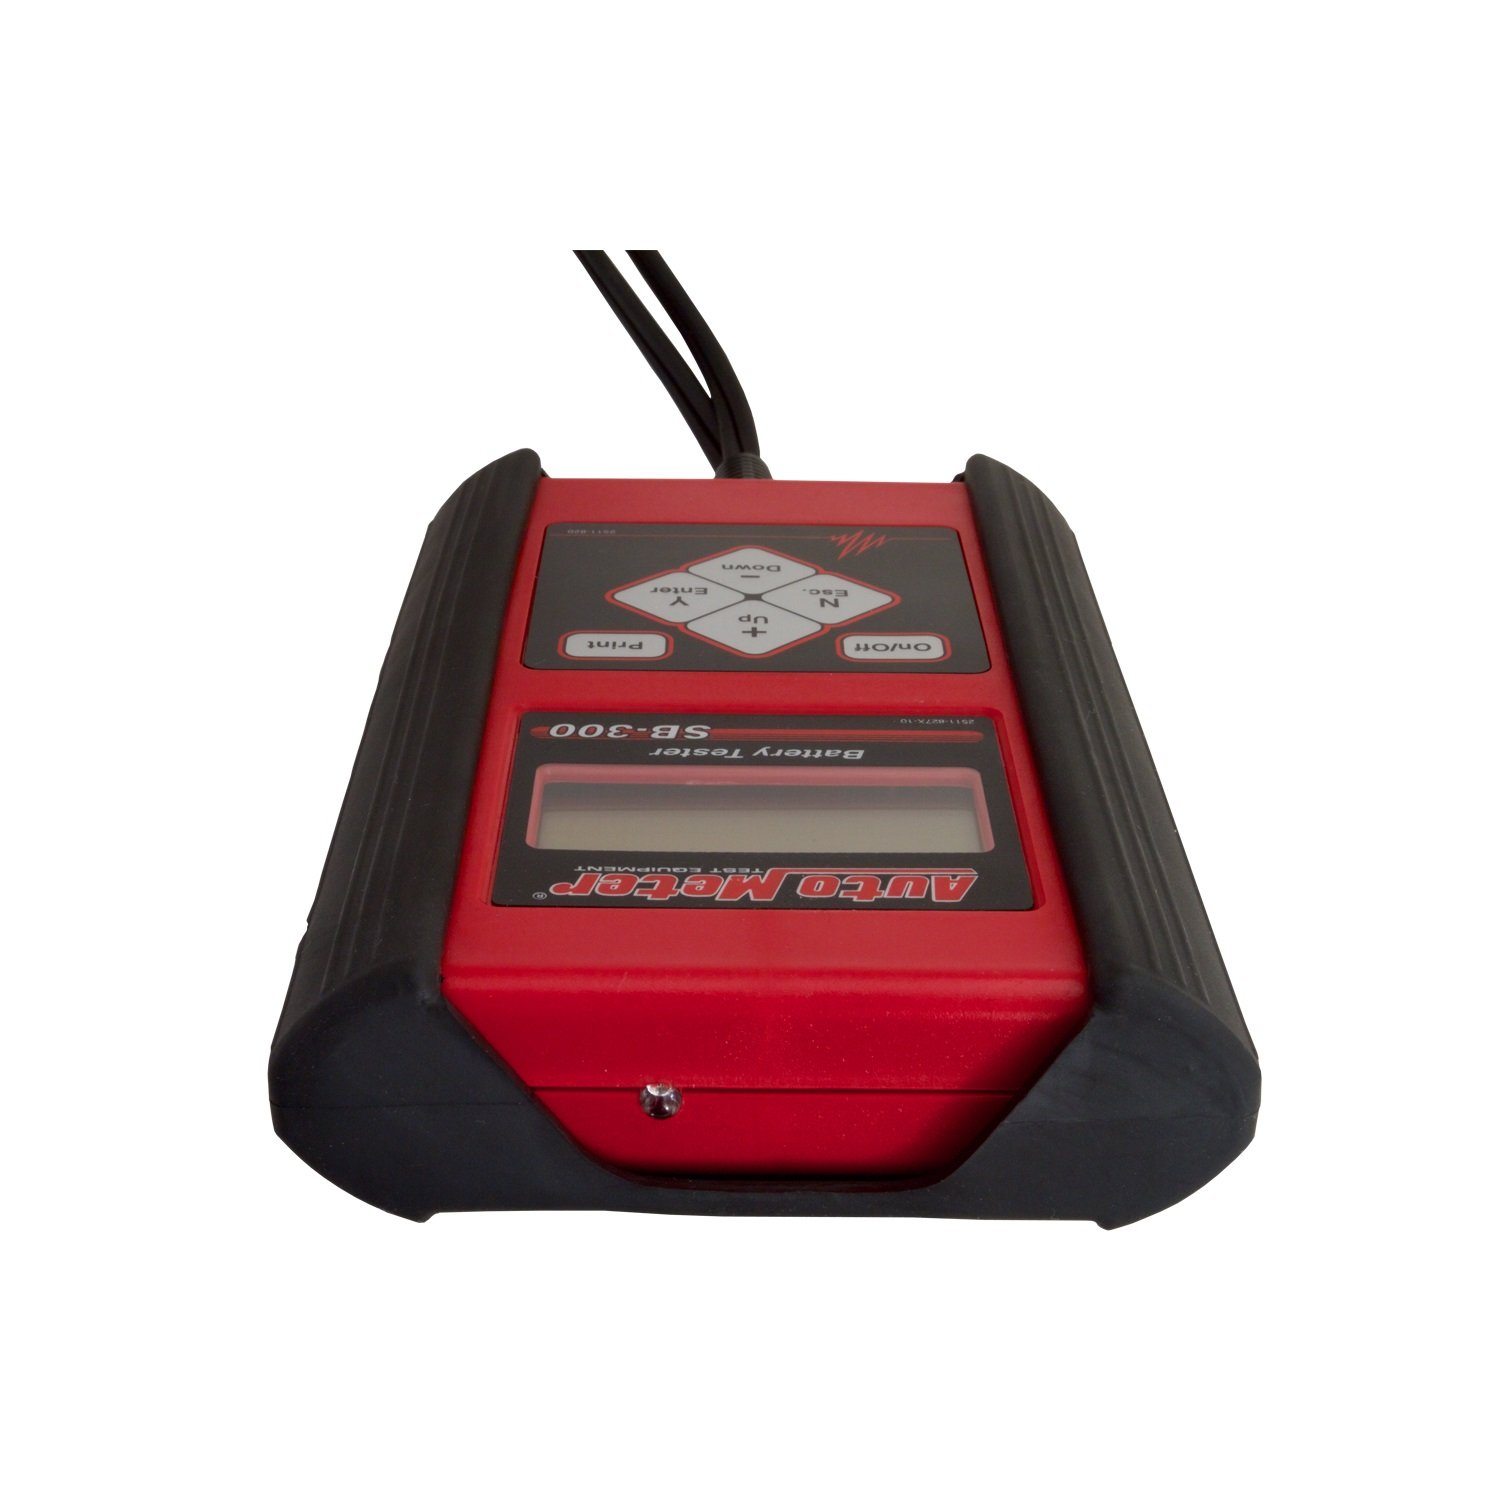 Auto Meter SB-300 Intelligent Handheld Battery Tester by Auto Meter (Image #4)